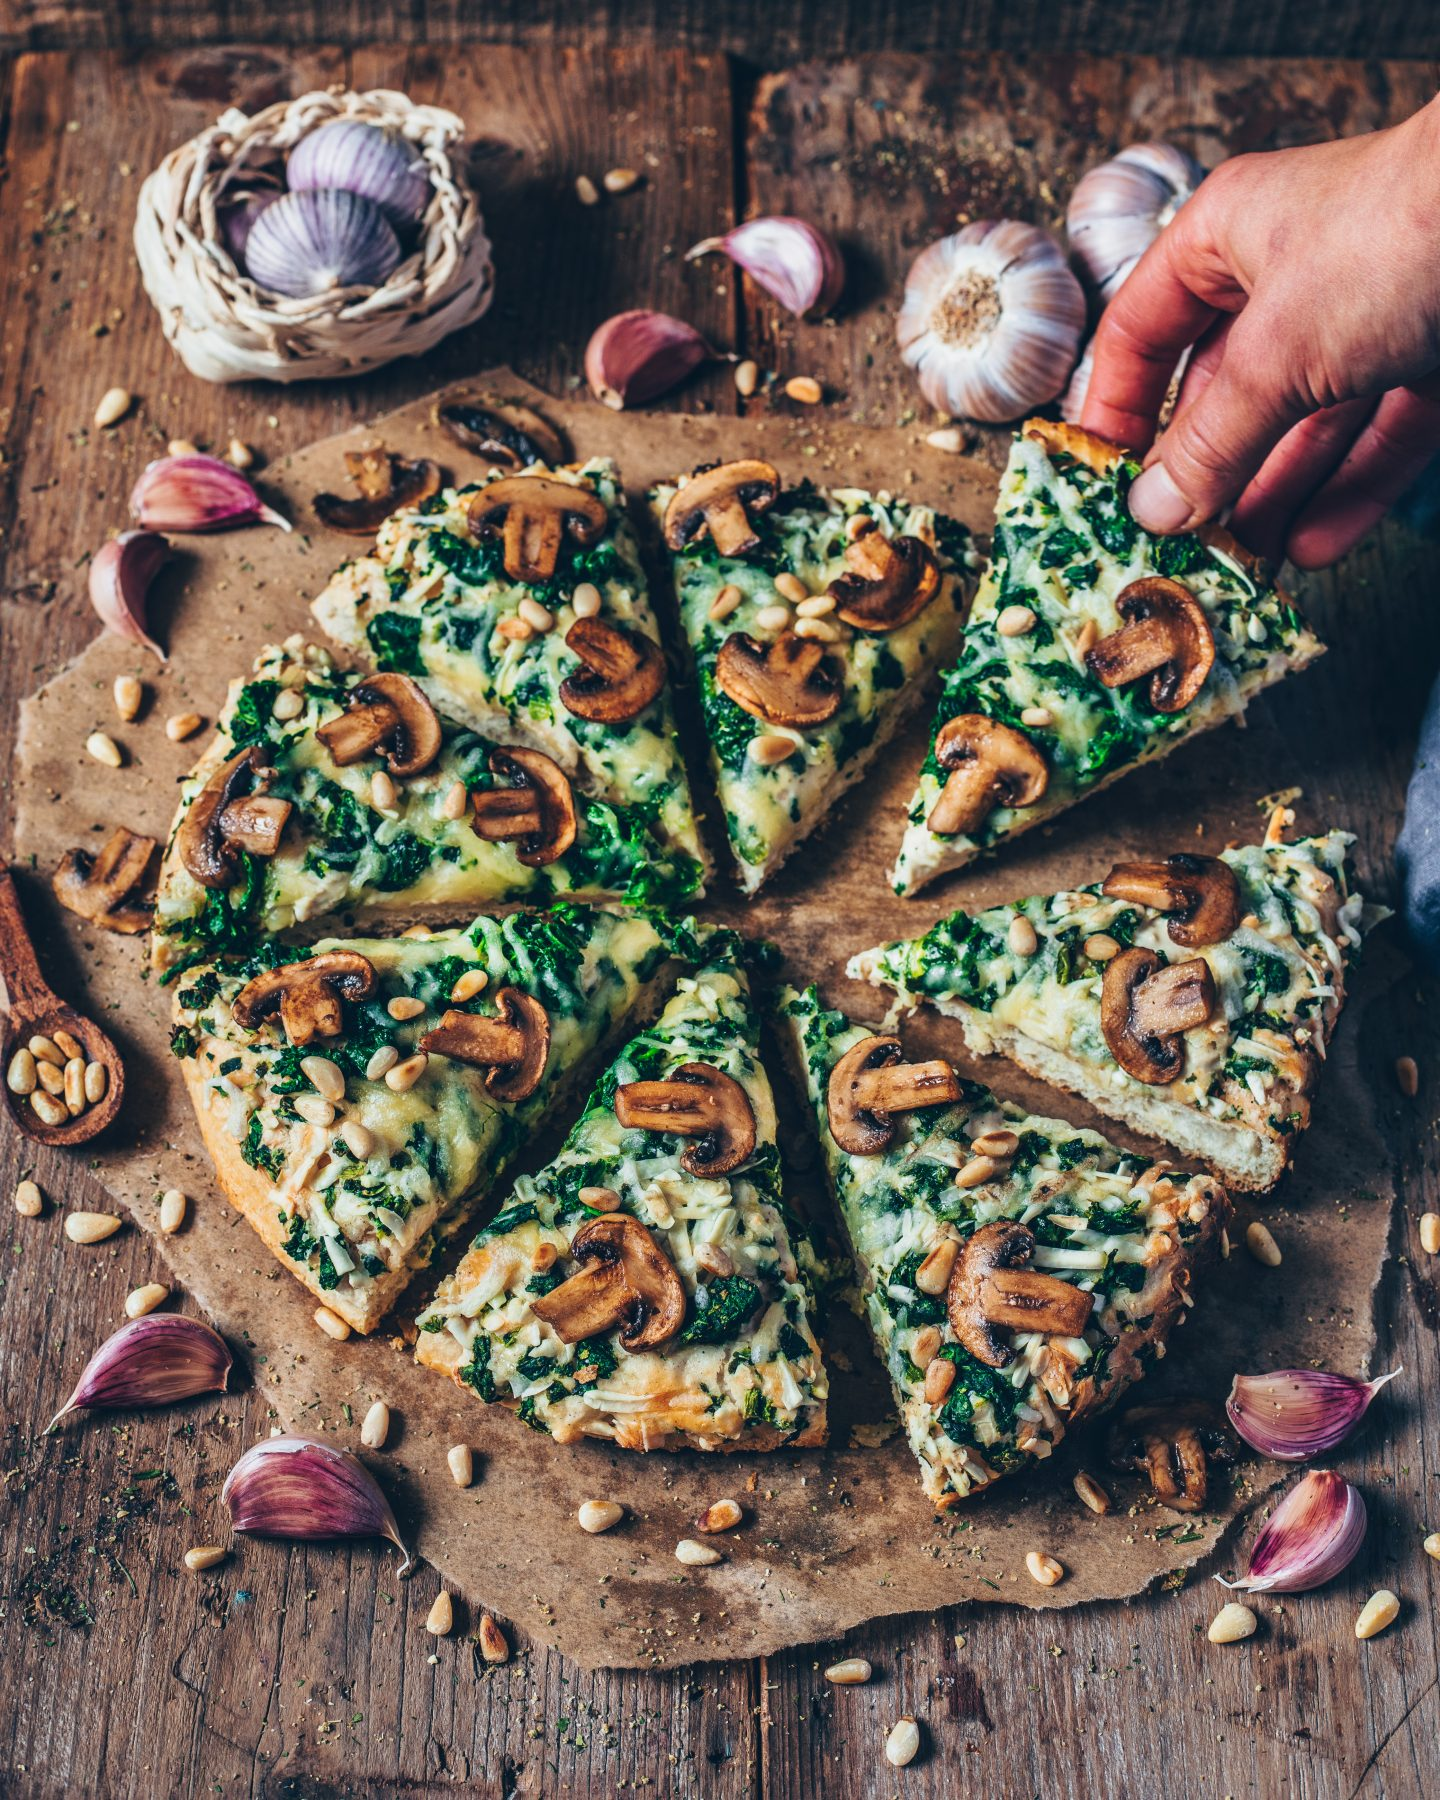 This cheesy vegan garlic mushroom and spinach pizza is perfect when you want a quick dinner that